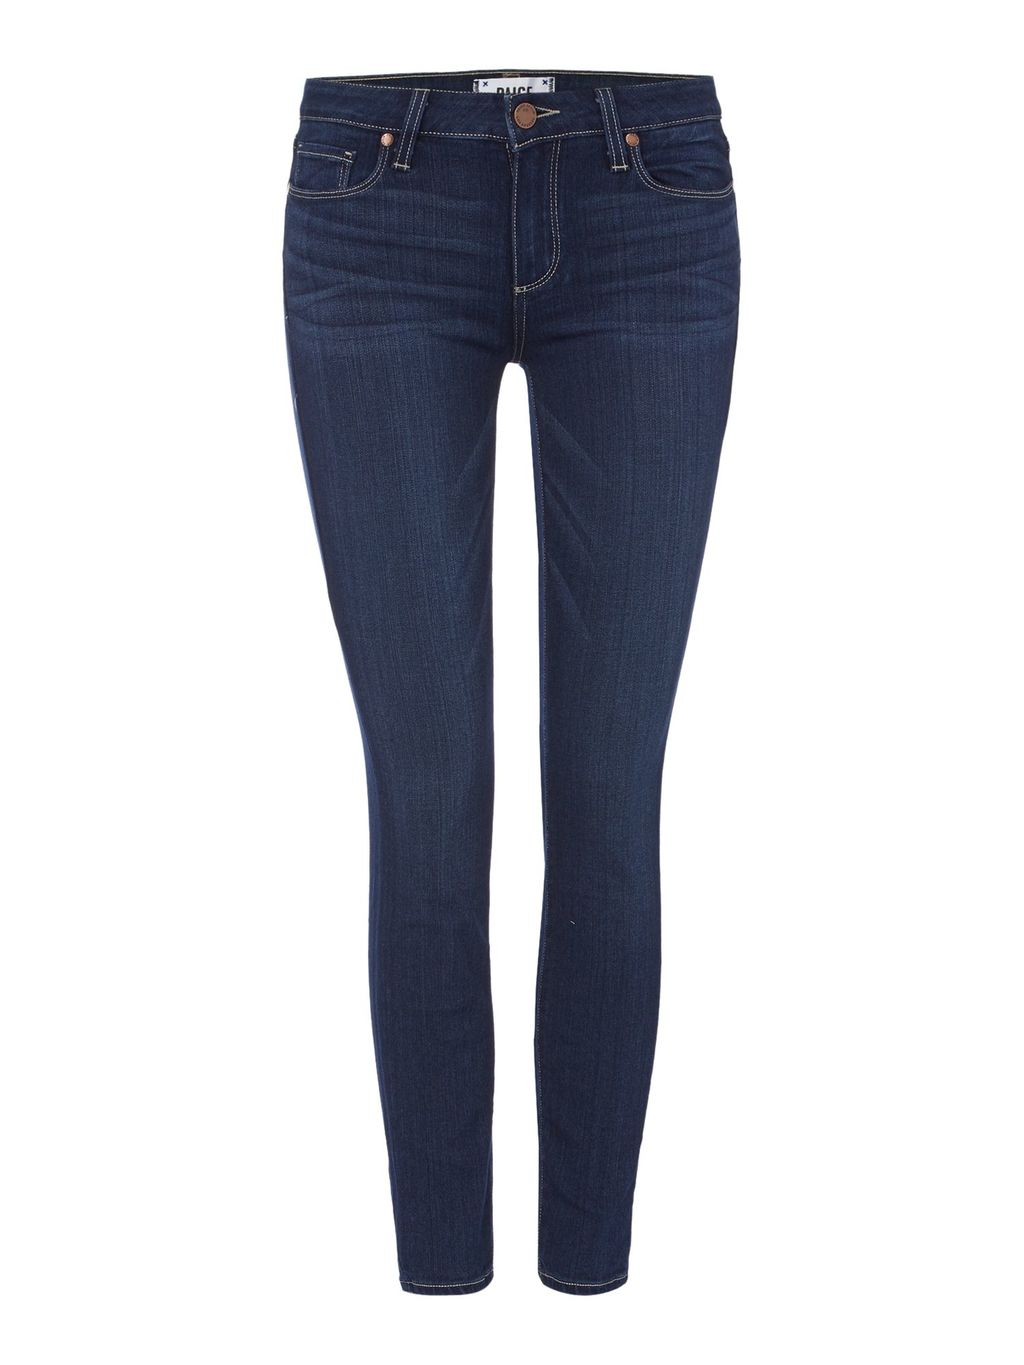 Verdugo Ankle Skinny In Dalia, Denim Dark Wash - style: skinny leg; length: standard; pattern: plain; pocket detail: traditional 5 pocket; waist: mid/regular rise; predominant colour: navy; occasions: casual; fibres: cotton - stretch; texture group: denim; pattern type: fabric; season: s/s 2016; wardrobe: basic